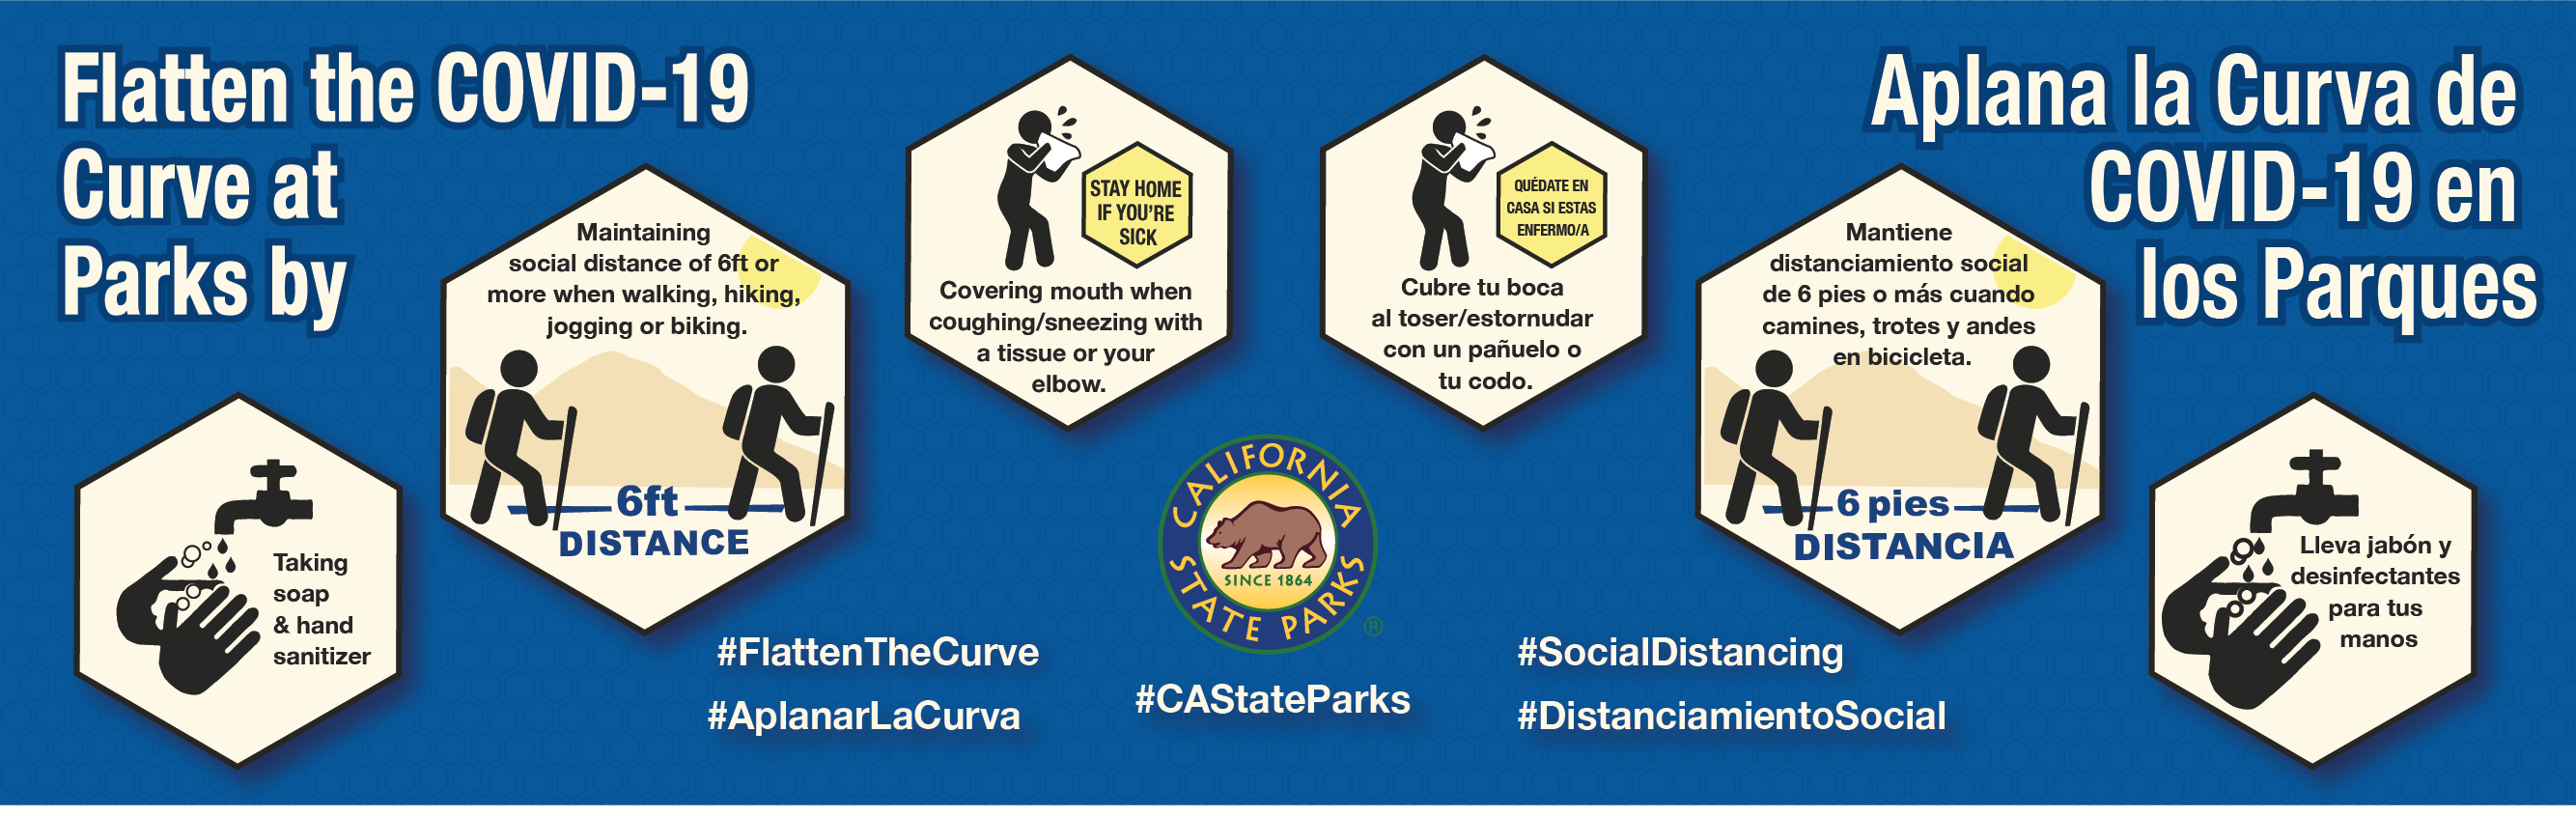 Banner for UPDATE: California State Parks Closes Additional Beaches and Parks: Public Reminded to Practice Safe, Physical Distancing